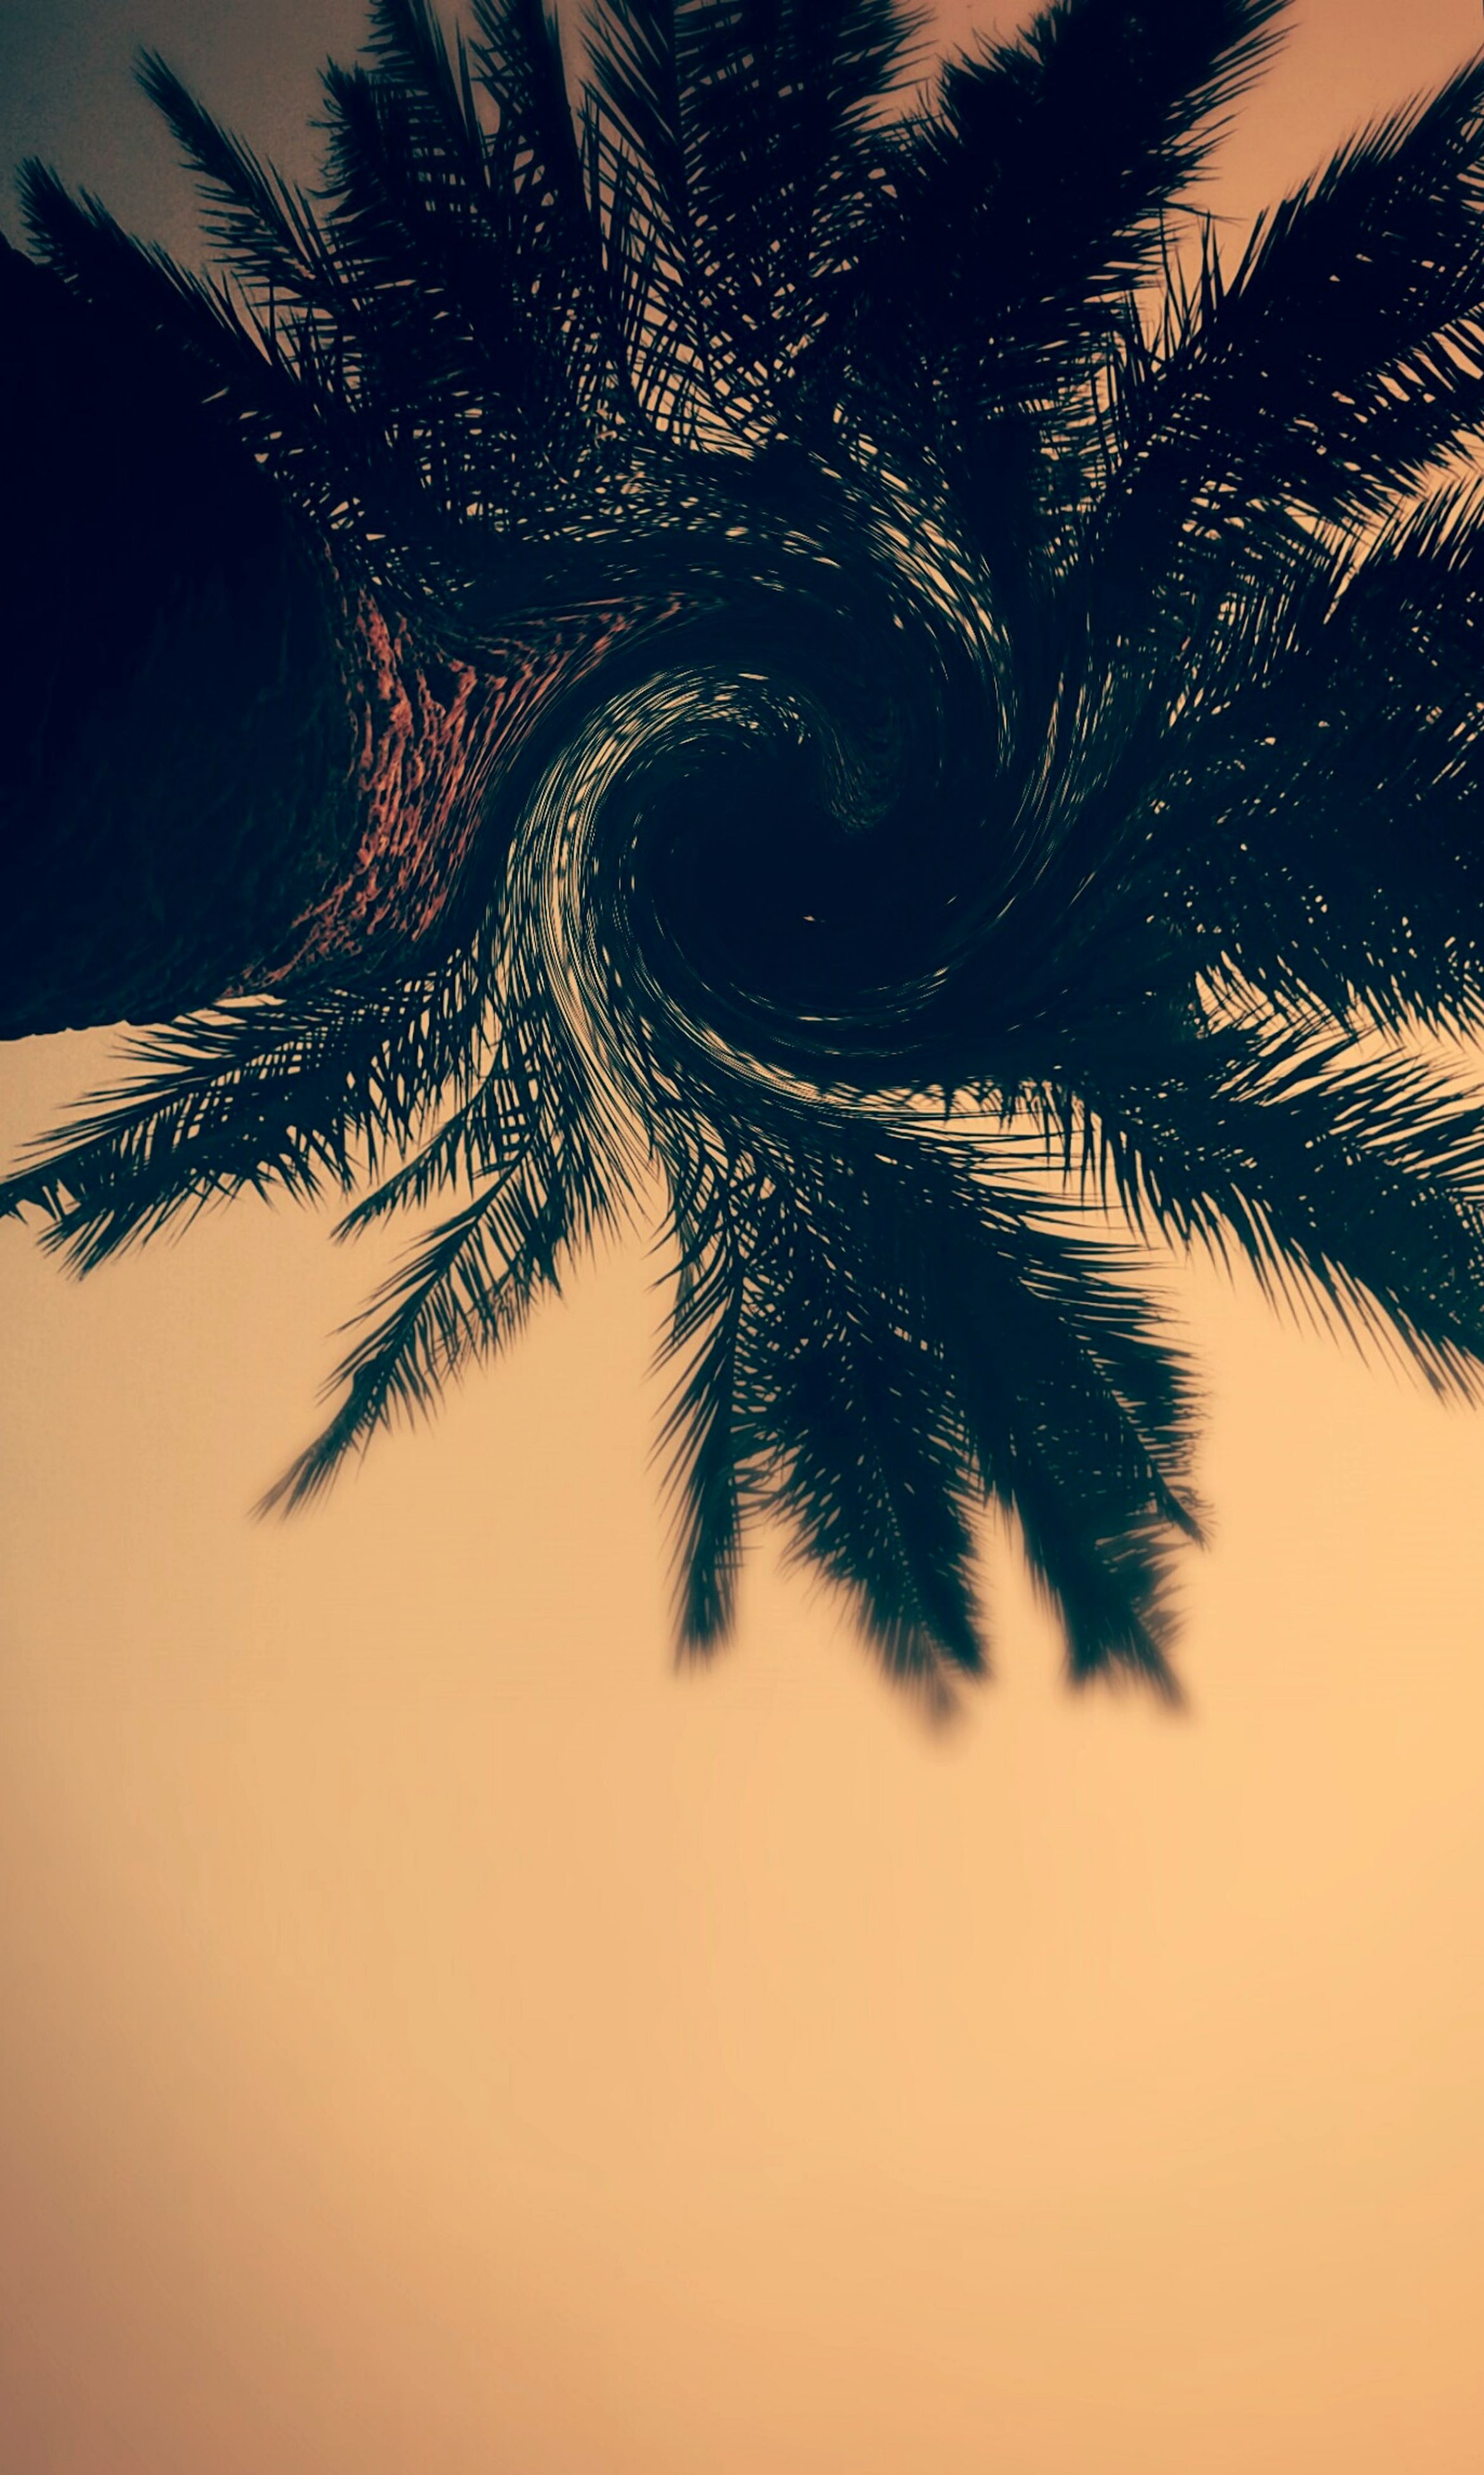 palm tree, low angle view, tree, silhouette, tranquility, nature, sky, beauty in nature, growth, sunset, tranquil scene, palm leaf, scenics, outdoors, no people, clear sky, branch, dusk, tree trunk, idyllic